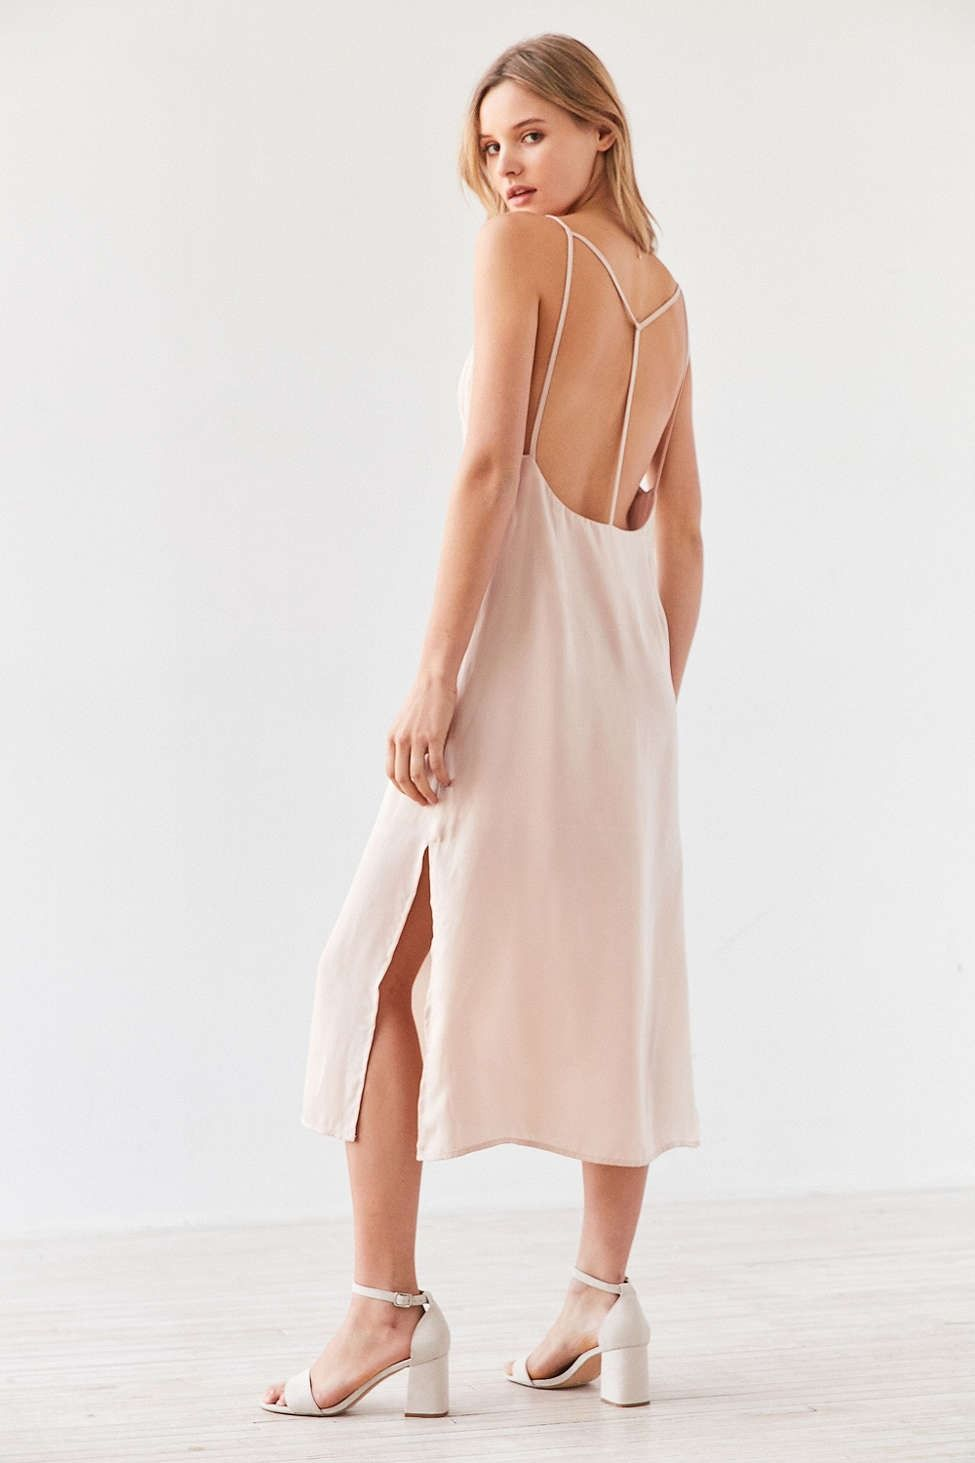 fc2d2686a8d17 Silence + Noise Strappy Back Shine Midi Slip Dress - Urban Outfitters